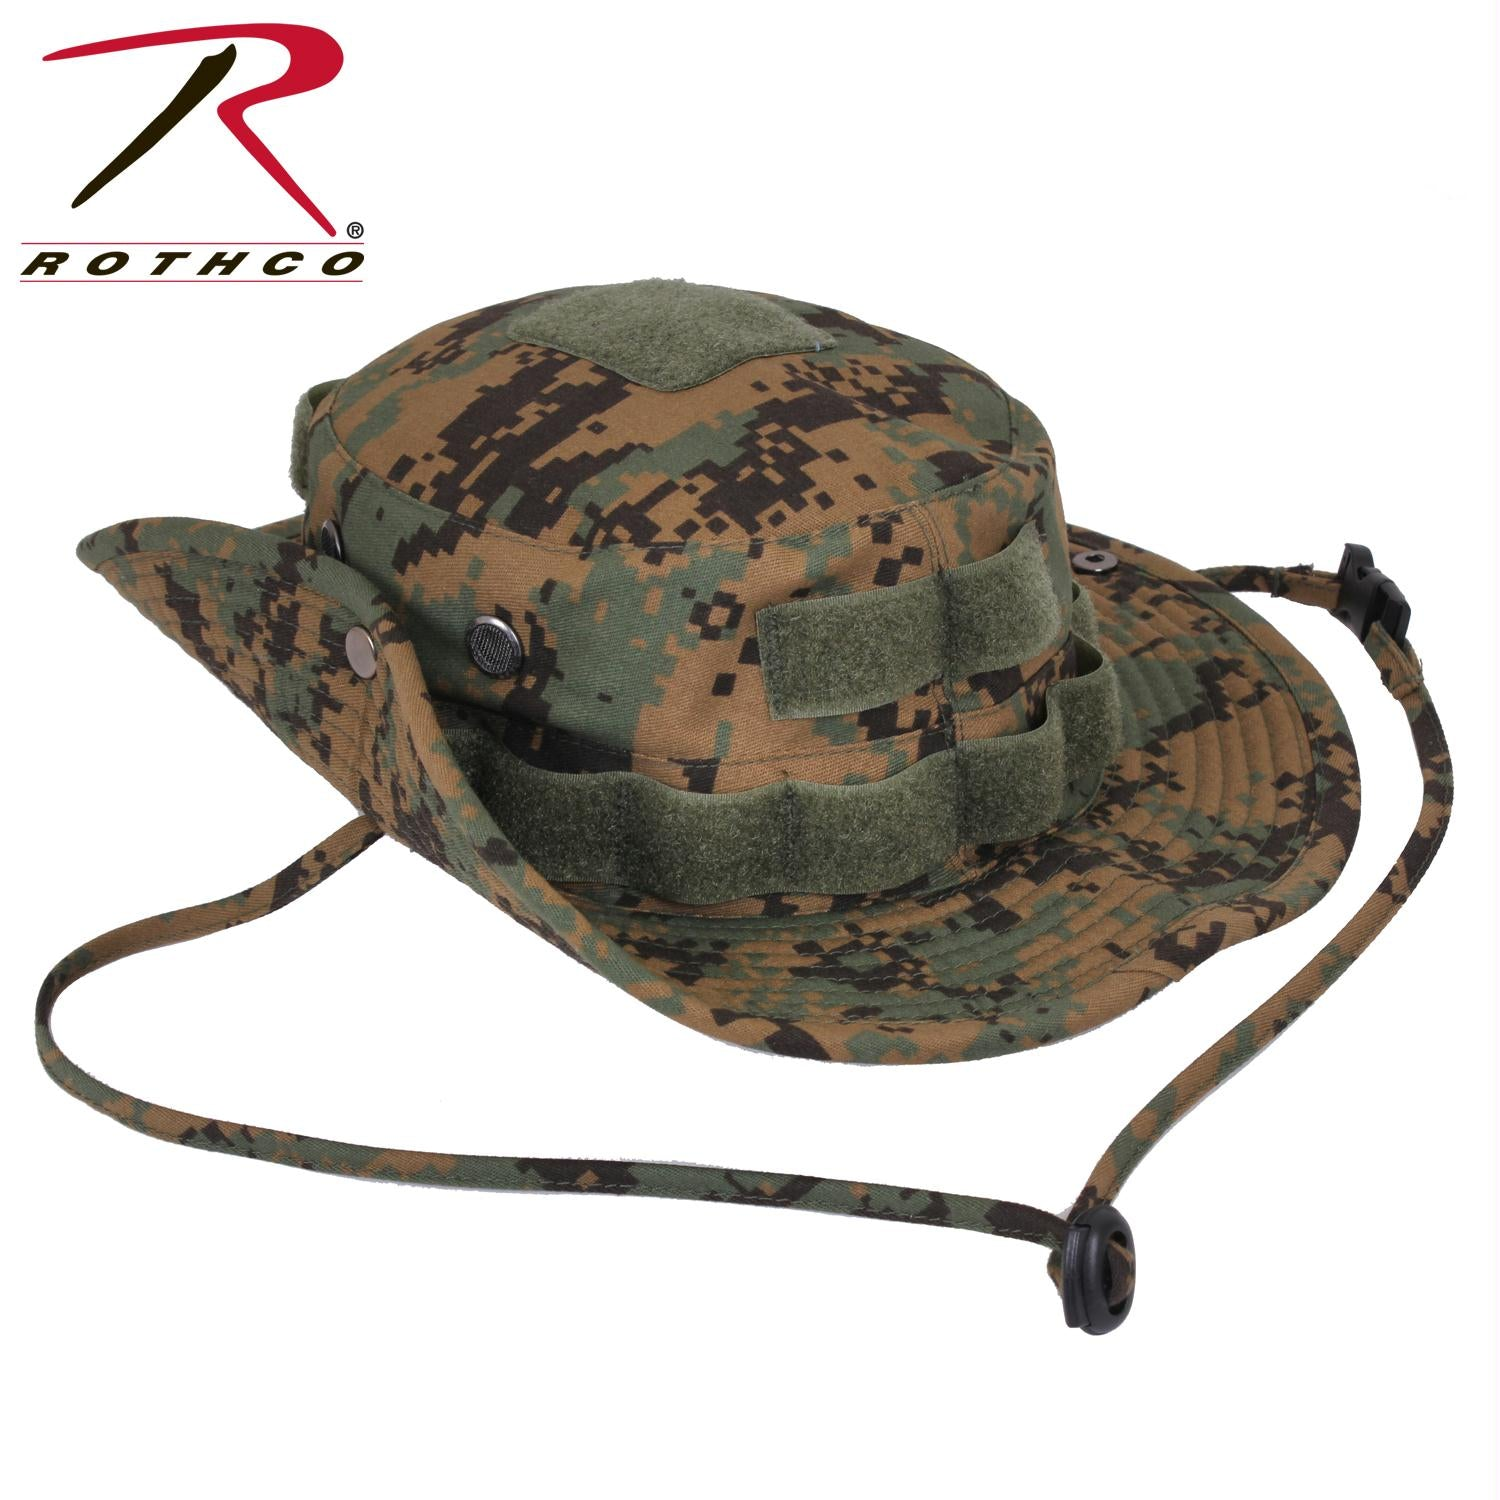 Rothco Tactical Boonie Hat - Woodland Digital Camo / 7